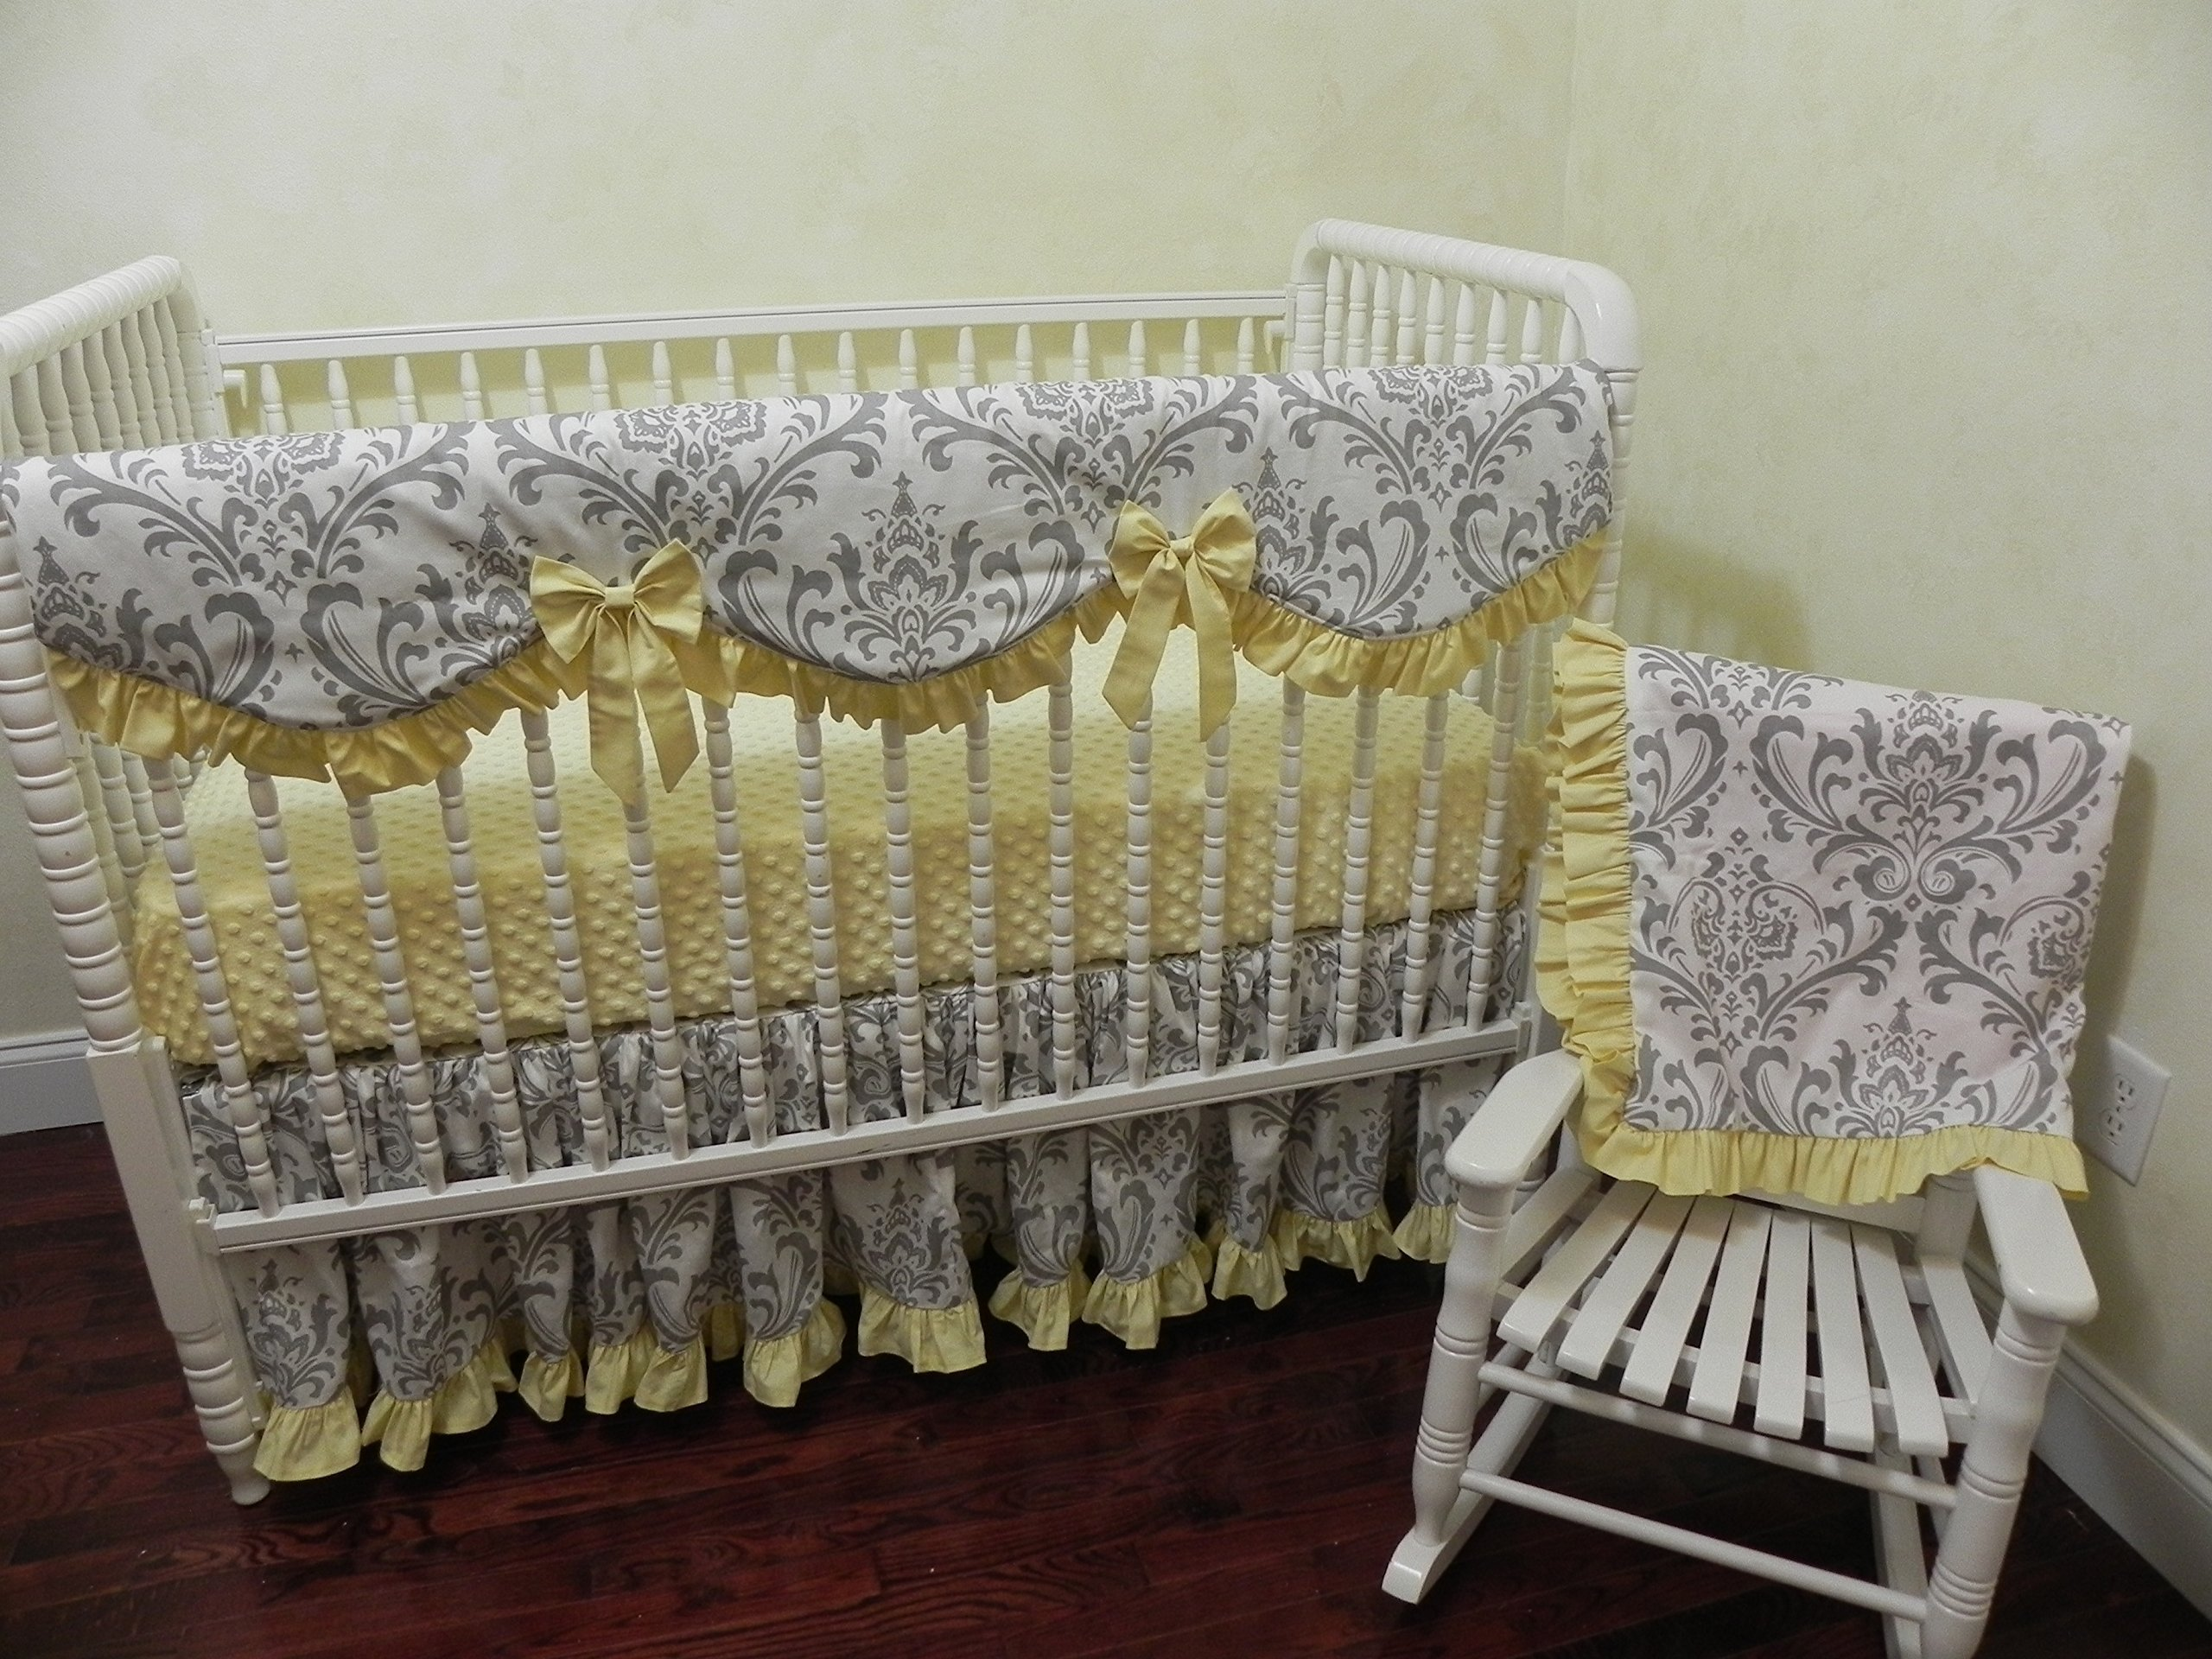 Nursery Bedding, Baby Girl Crib Bedding Set Brooke in Yellow, Scalloped Crib Rail Cover, Bumperless Crib Bedding, White and Gray Damask with Light Yellow Baby Bedding – Choose Your Pieces